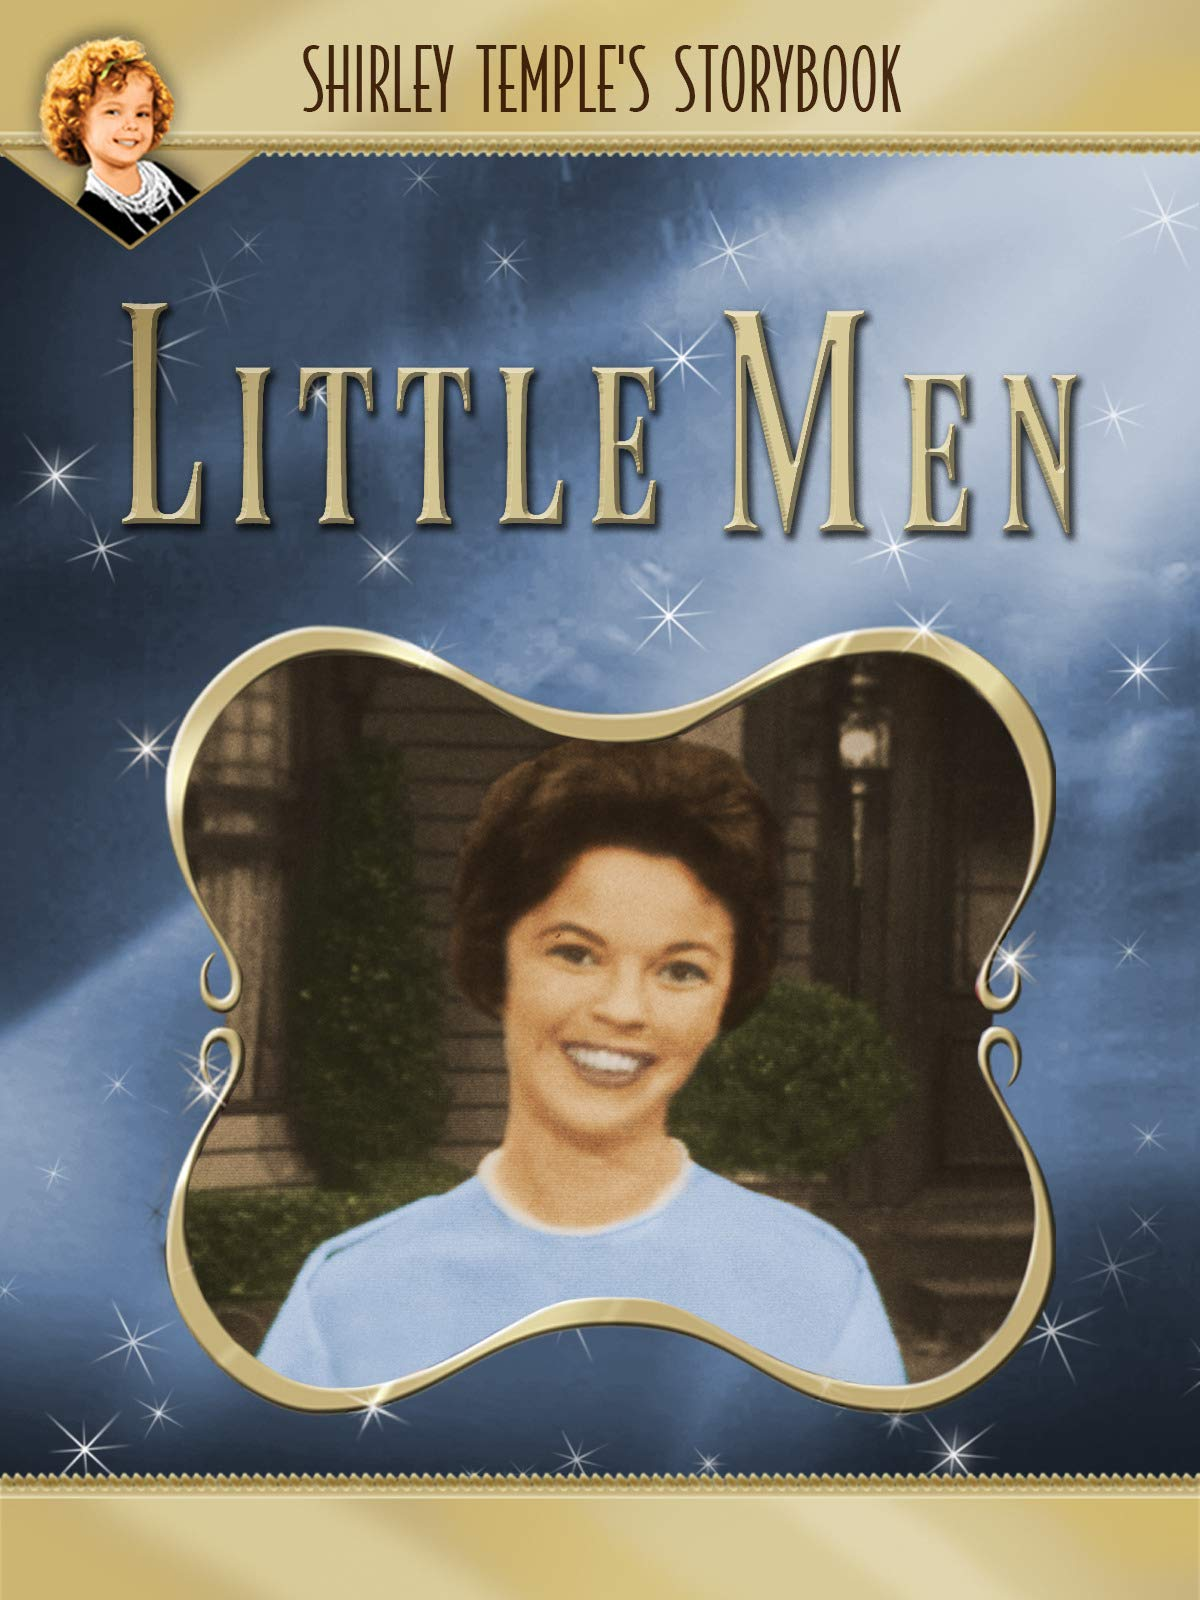 Shirley Temple's Storybook: Little Men on Amazon Prime Video UK